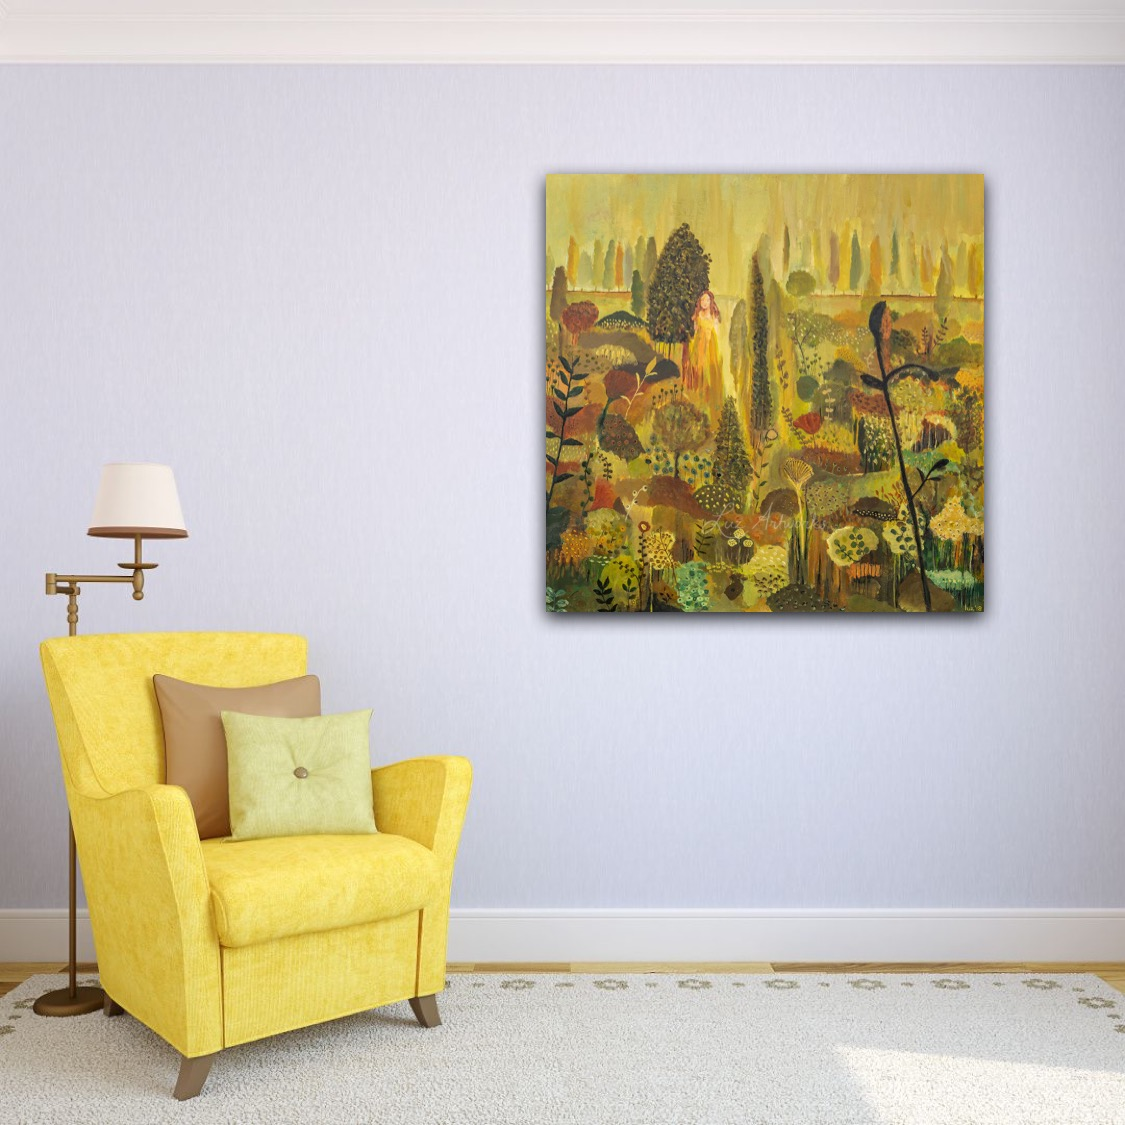 Painting Garden of my Soul by Marloes Bloedjes Luz Artworks - on the wall